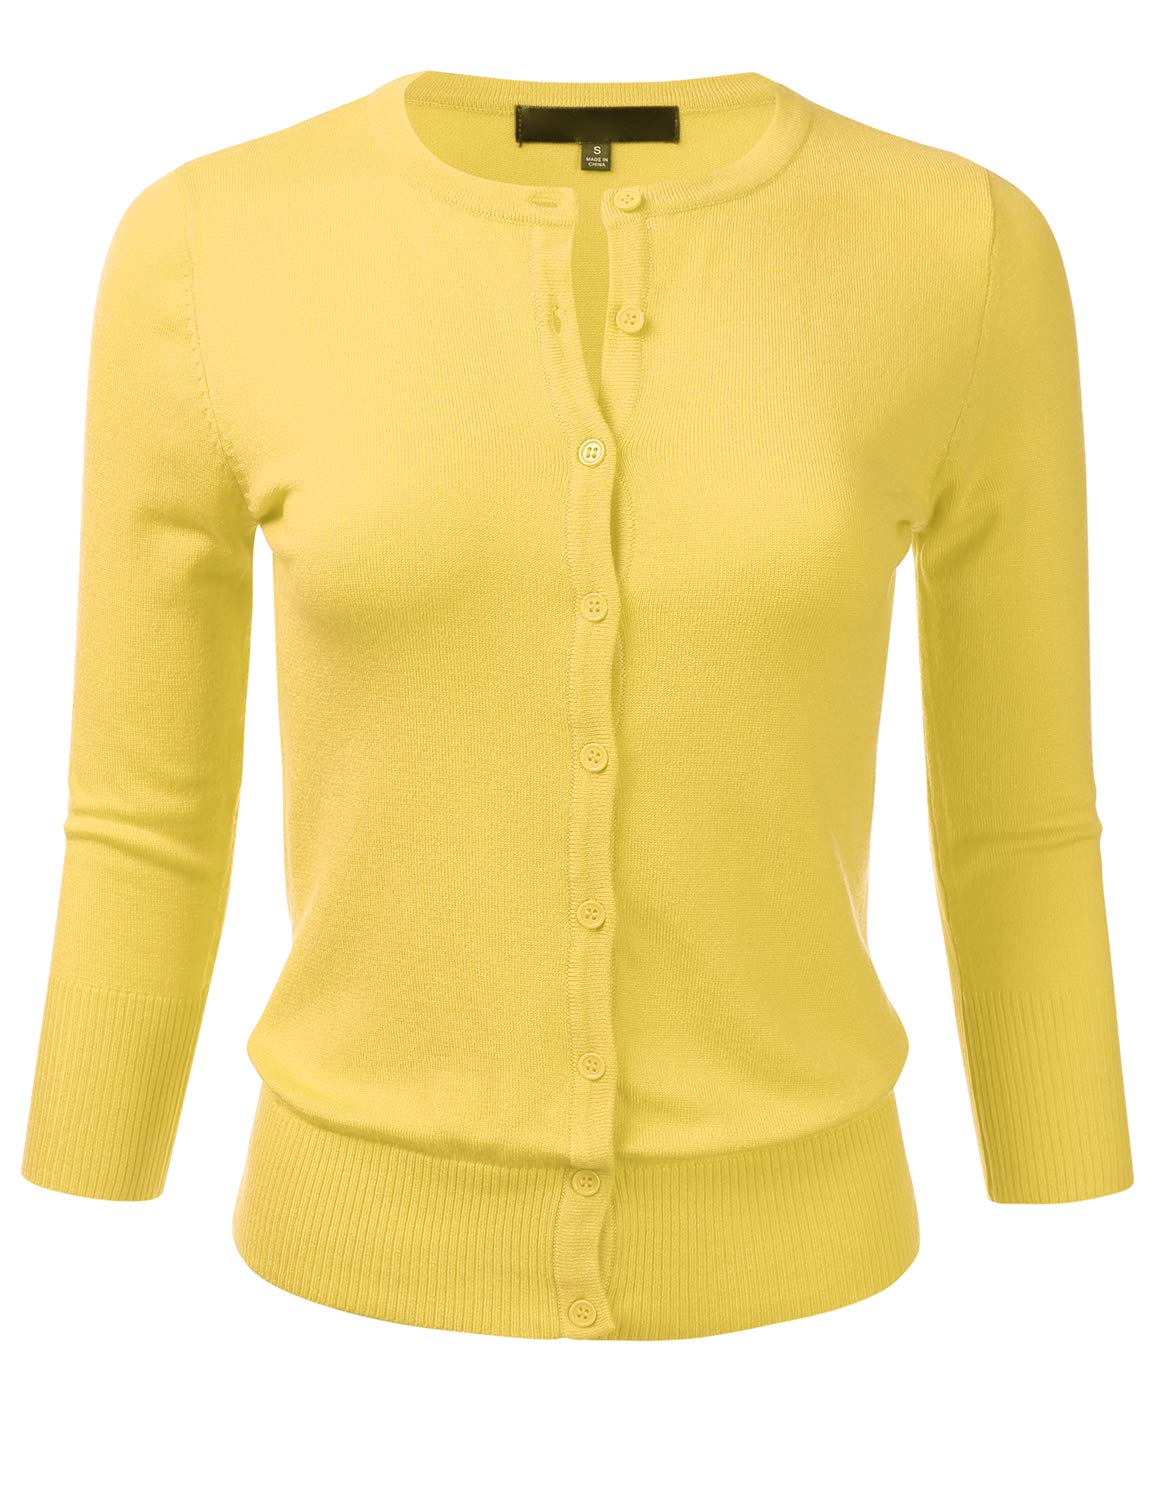 FLORIA Womens Button Down 3/4 Sleeve Crew Neck Knit Cardigan Sweater BABYYELLOW L